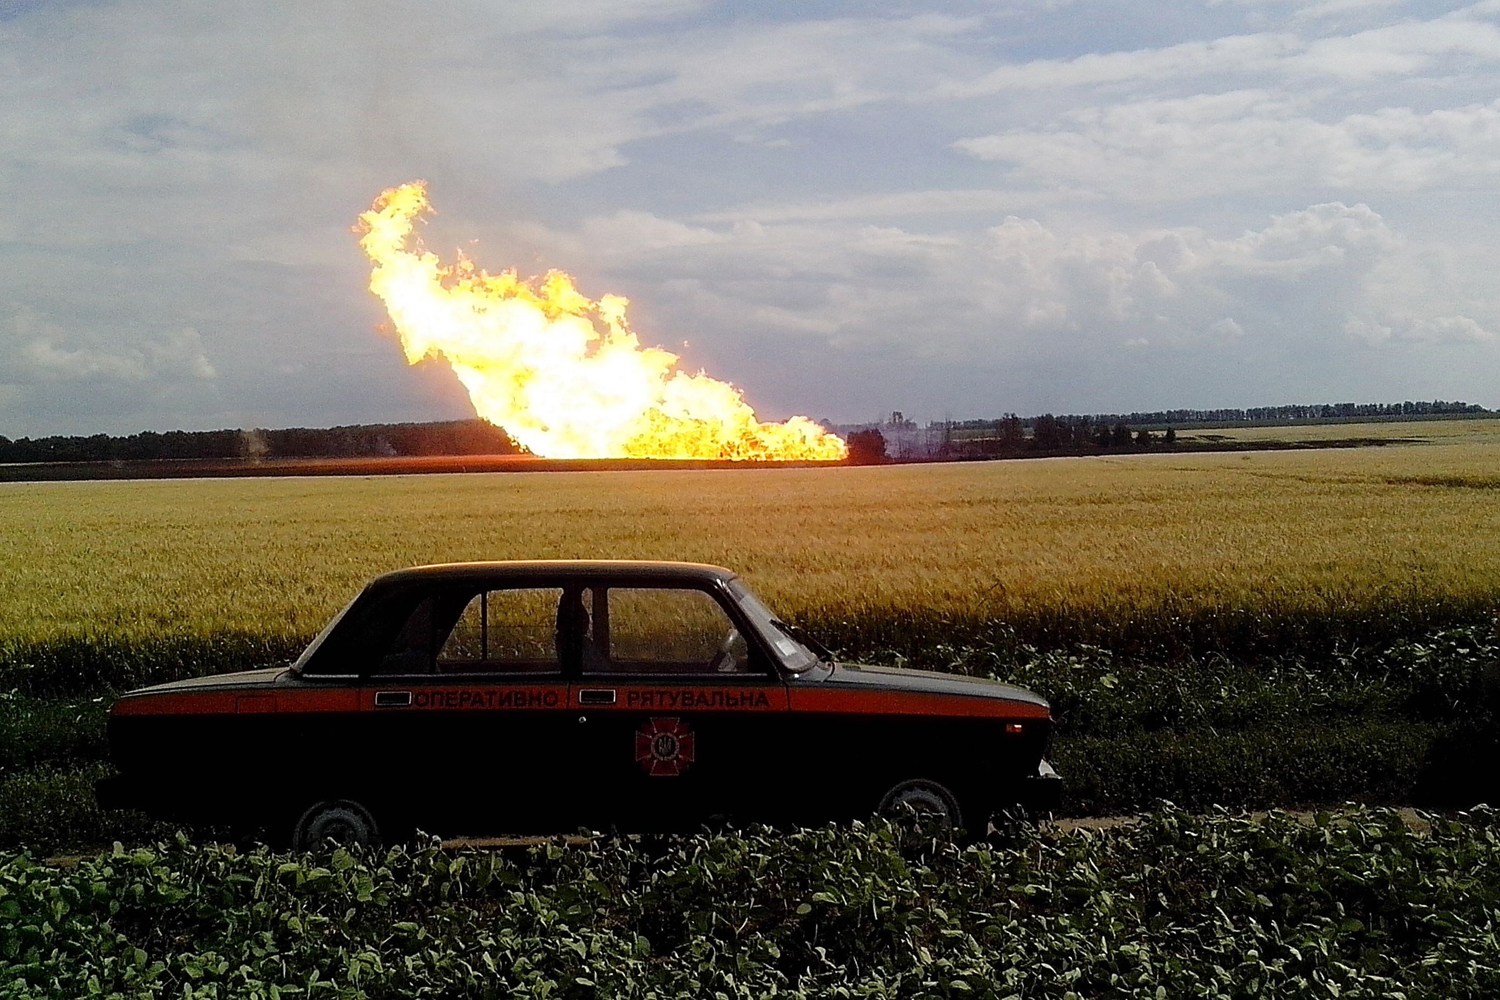 Jun. 17, 2014                               A handout picture taken and released by the Ukrainian Emergency Service on  shows a police car parked beside a field near a fire on the gas pipeline the village of Iskivtsi in the Lokhvytsia region.